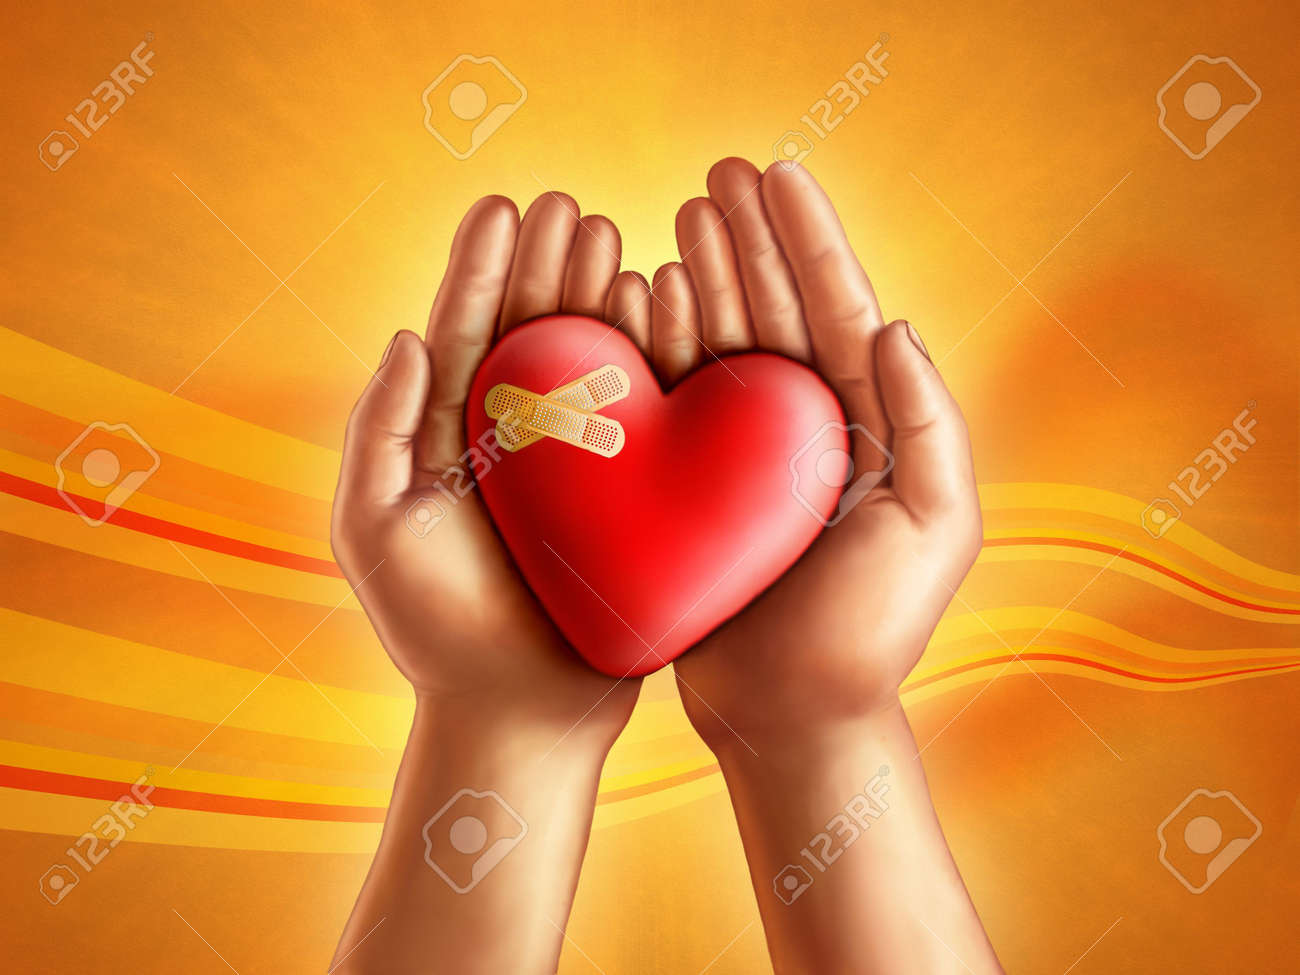 Hands holding a broken hearth, care and compassion concept. Digital illustration. Stock Illustration - 6818783